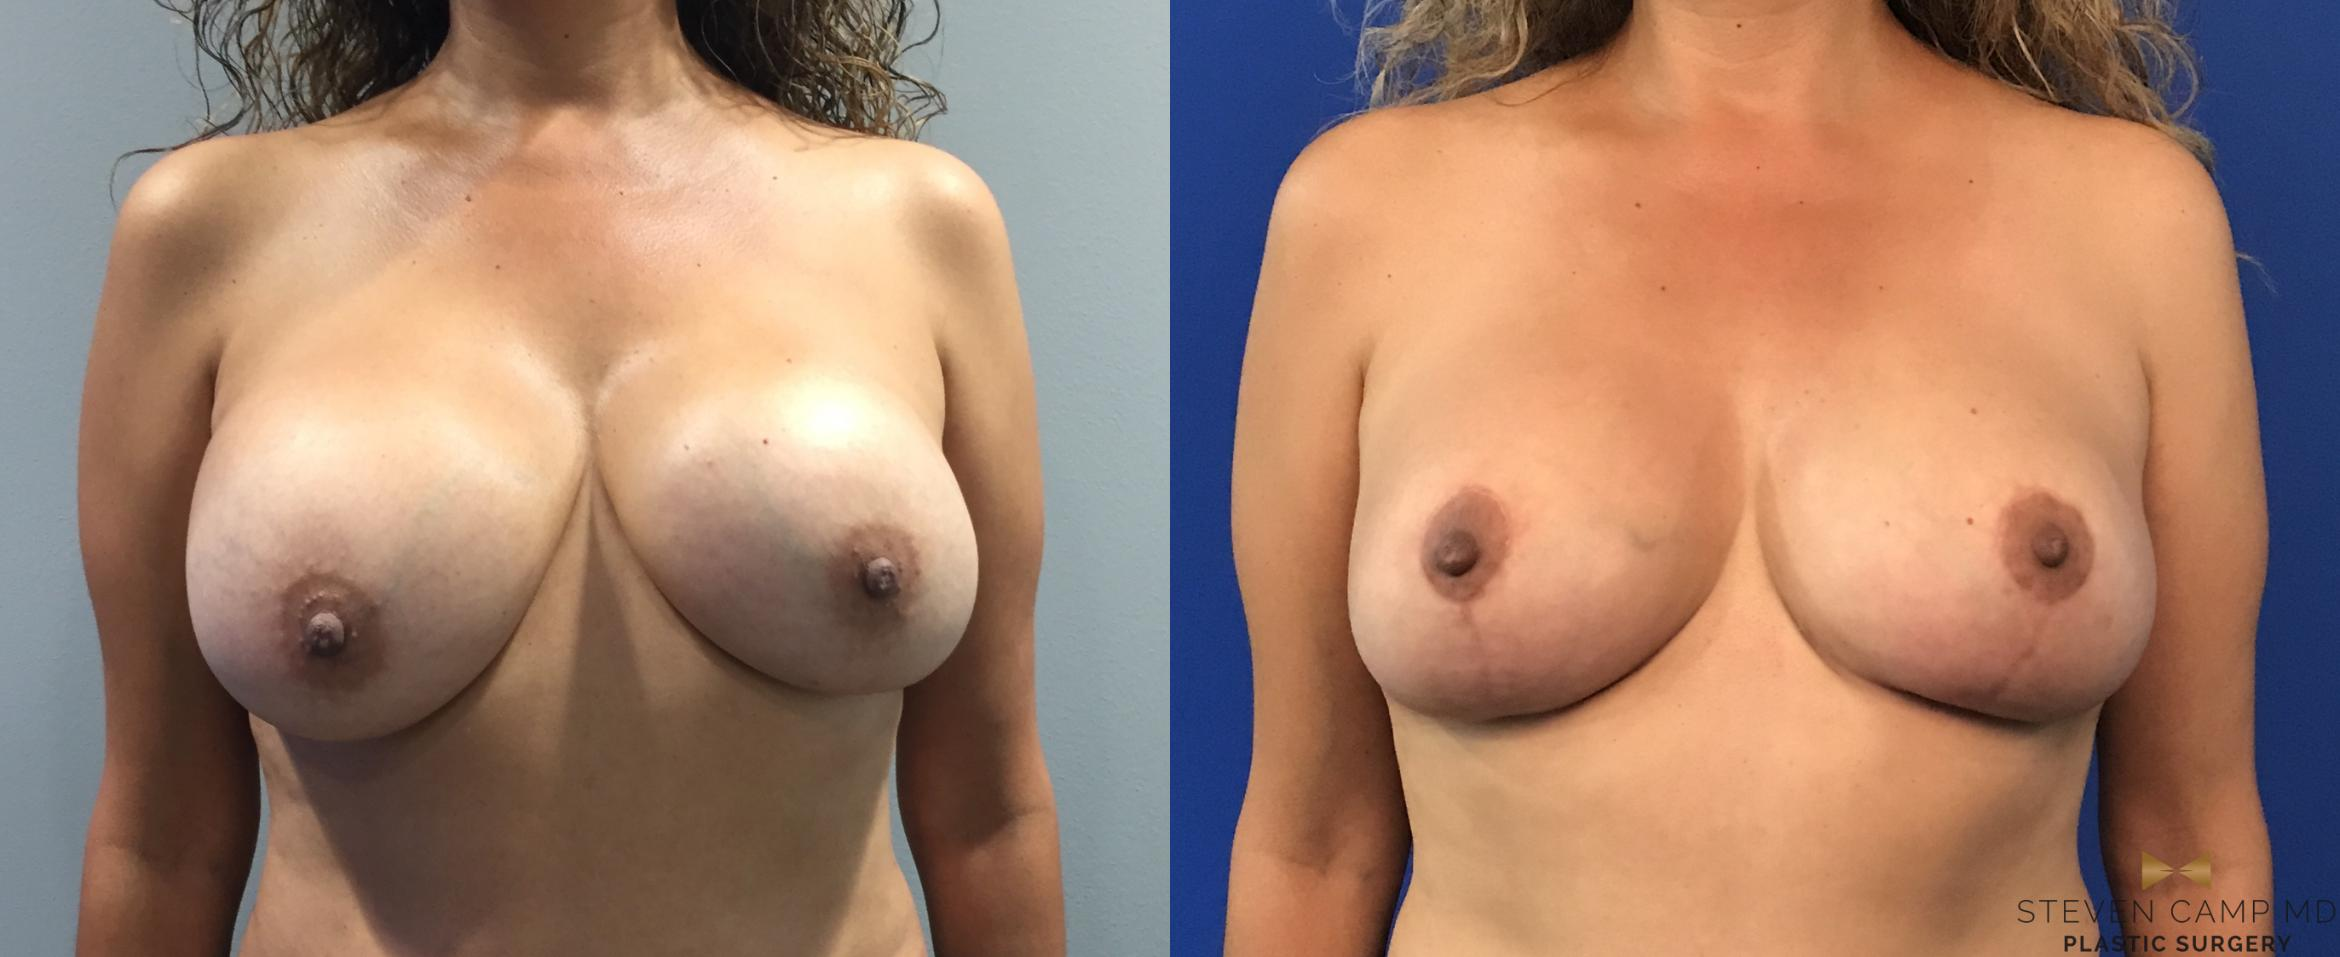 Breast Implant Exchange, Mastopexy Before & After Photo | Fort Worth, Texas | Steven Camp MD Plastic Surgery